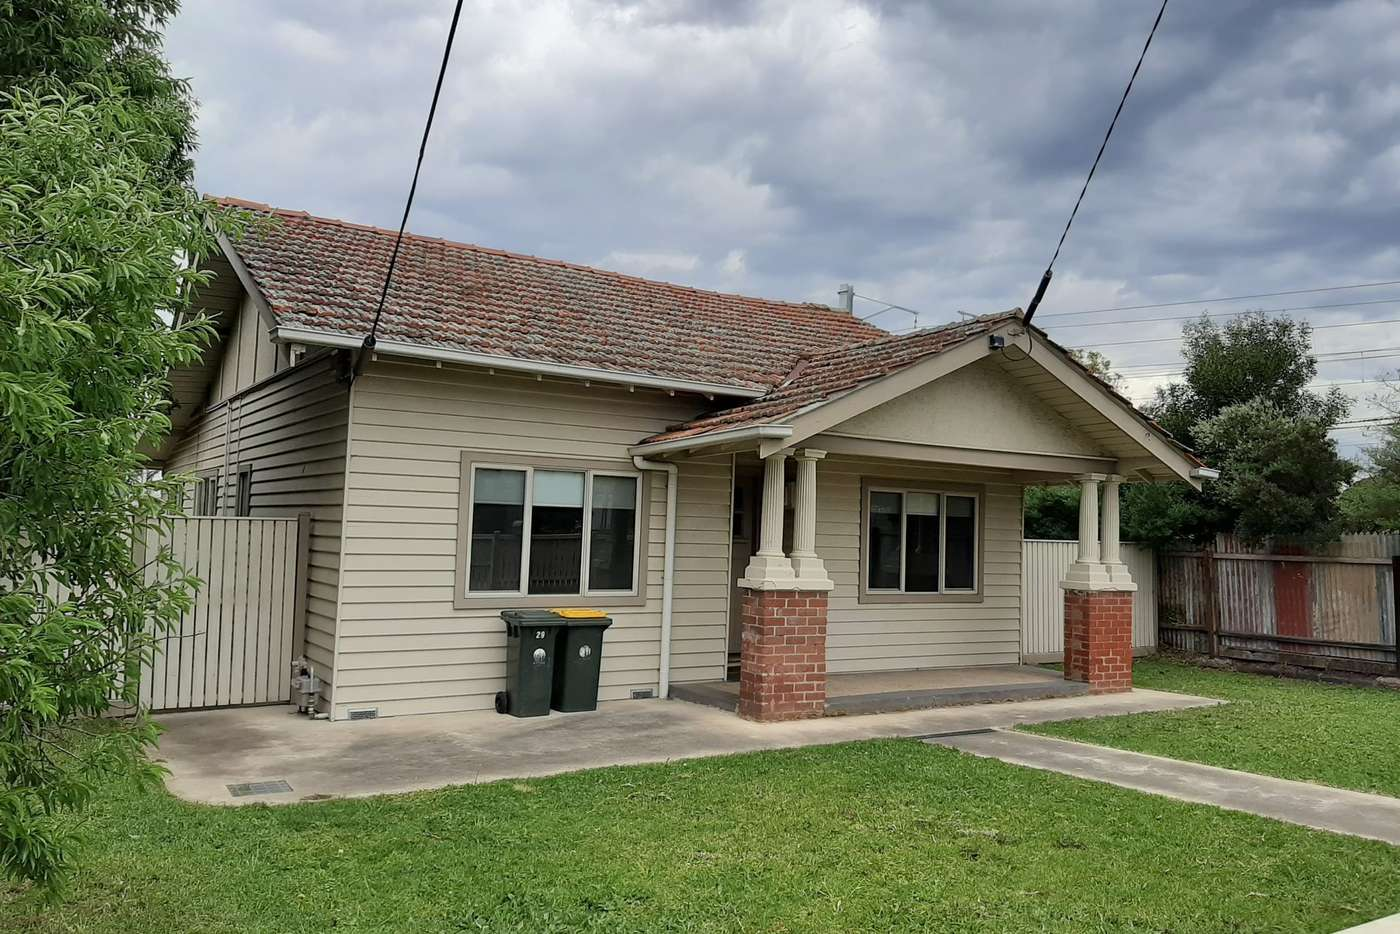 Main view of Homely house listing, 29 Ohea Street, Coburg VIC 3058